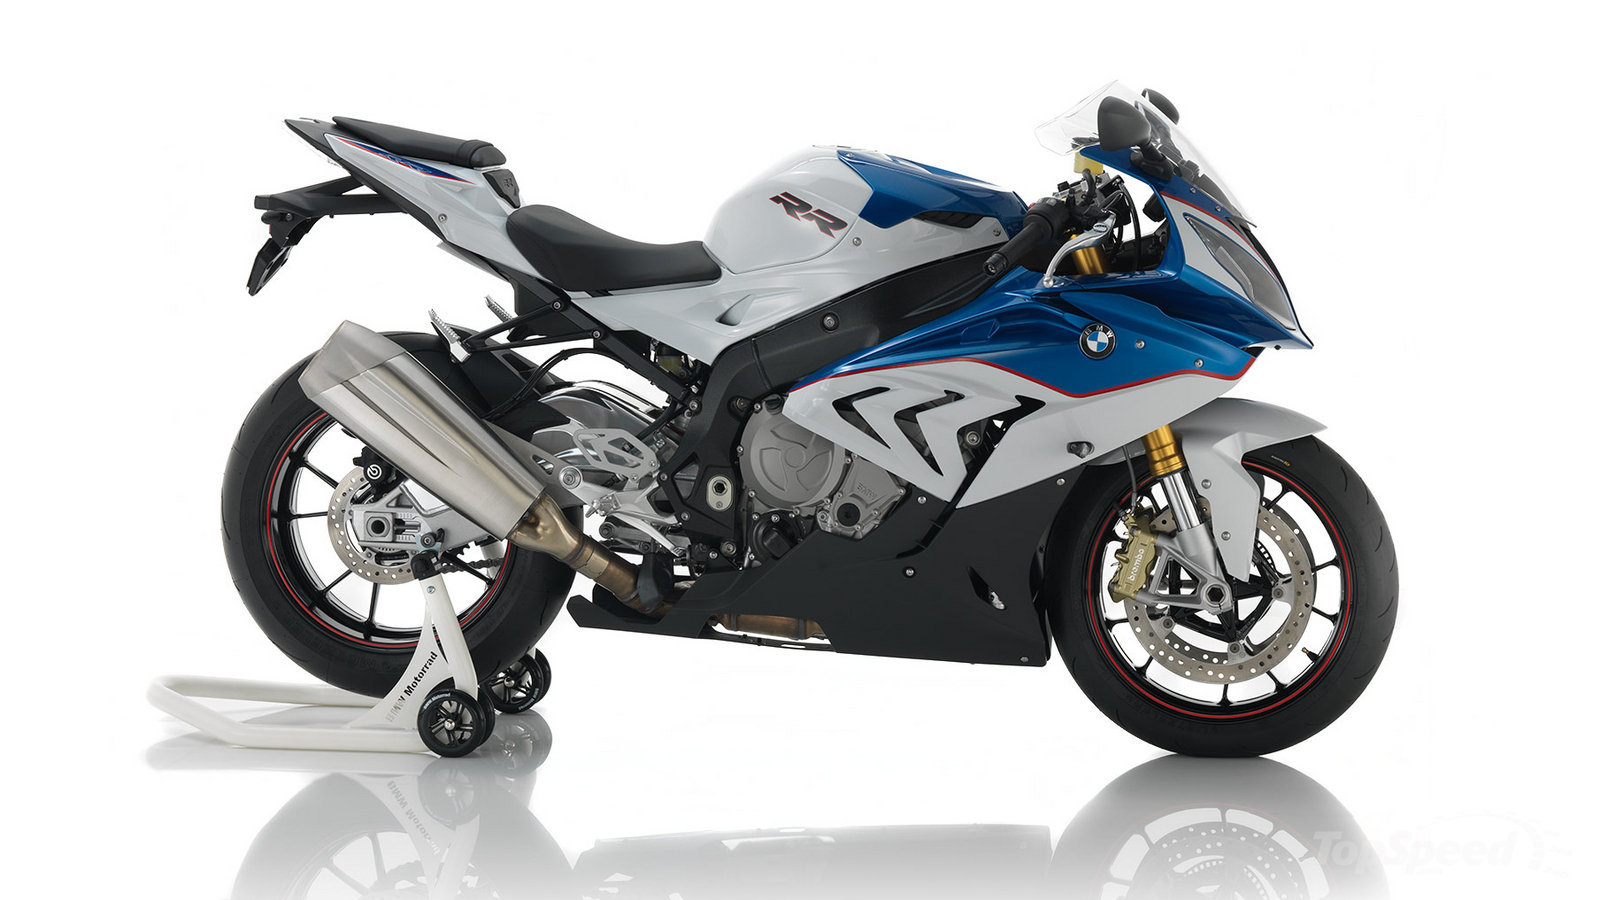 2015 2017 bmw s 1000 rr picture 678709 motorcycle. Black Bedroom Furniture Sets. Home Design Ideas